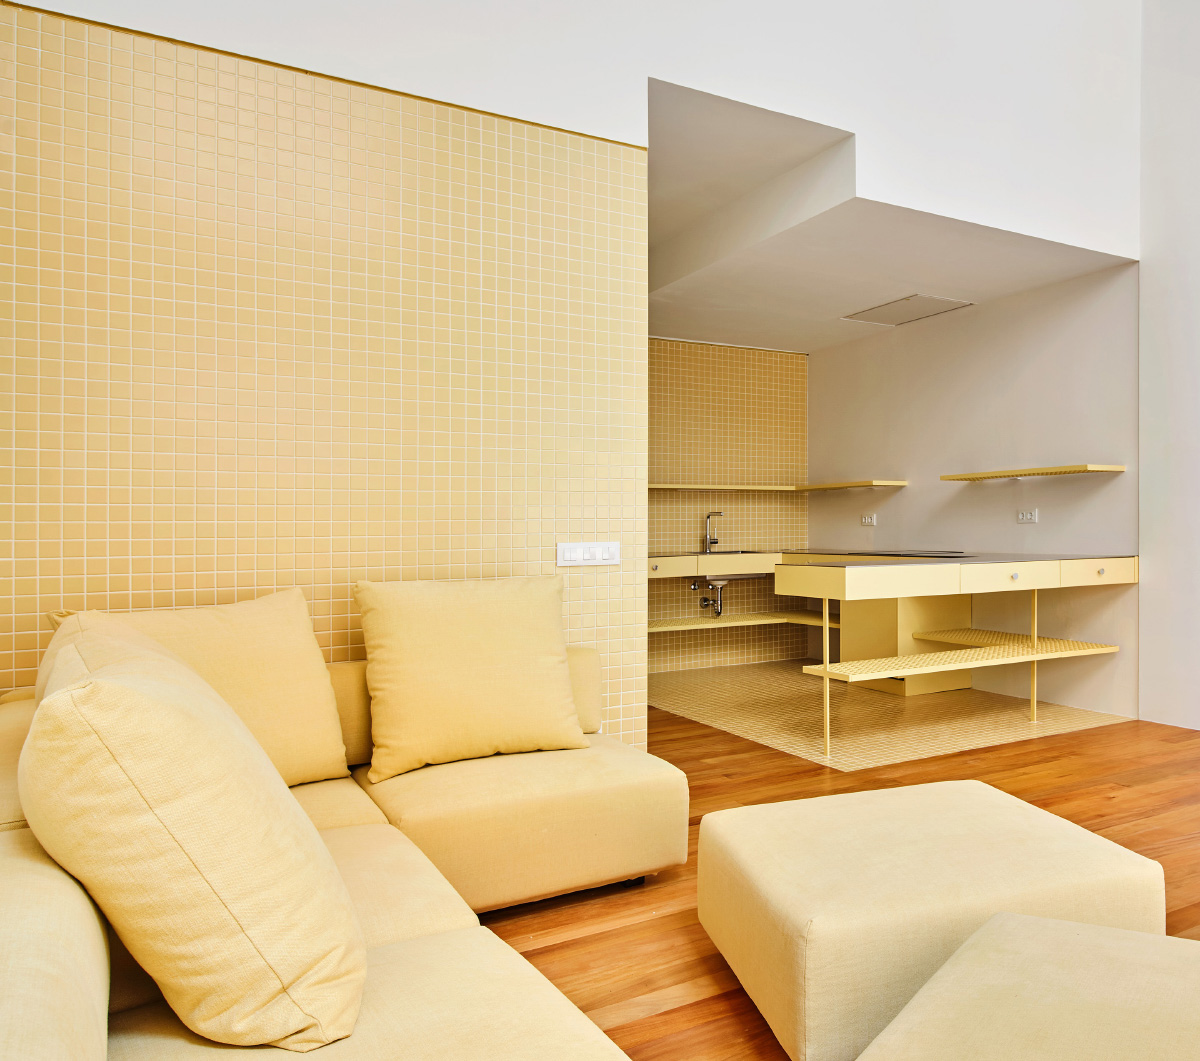 Interior of an apartment complex with gold-tiled walls